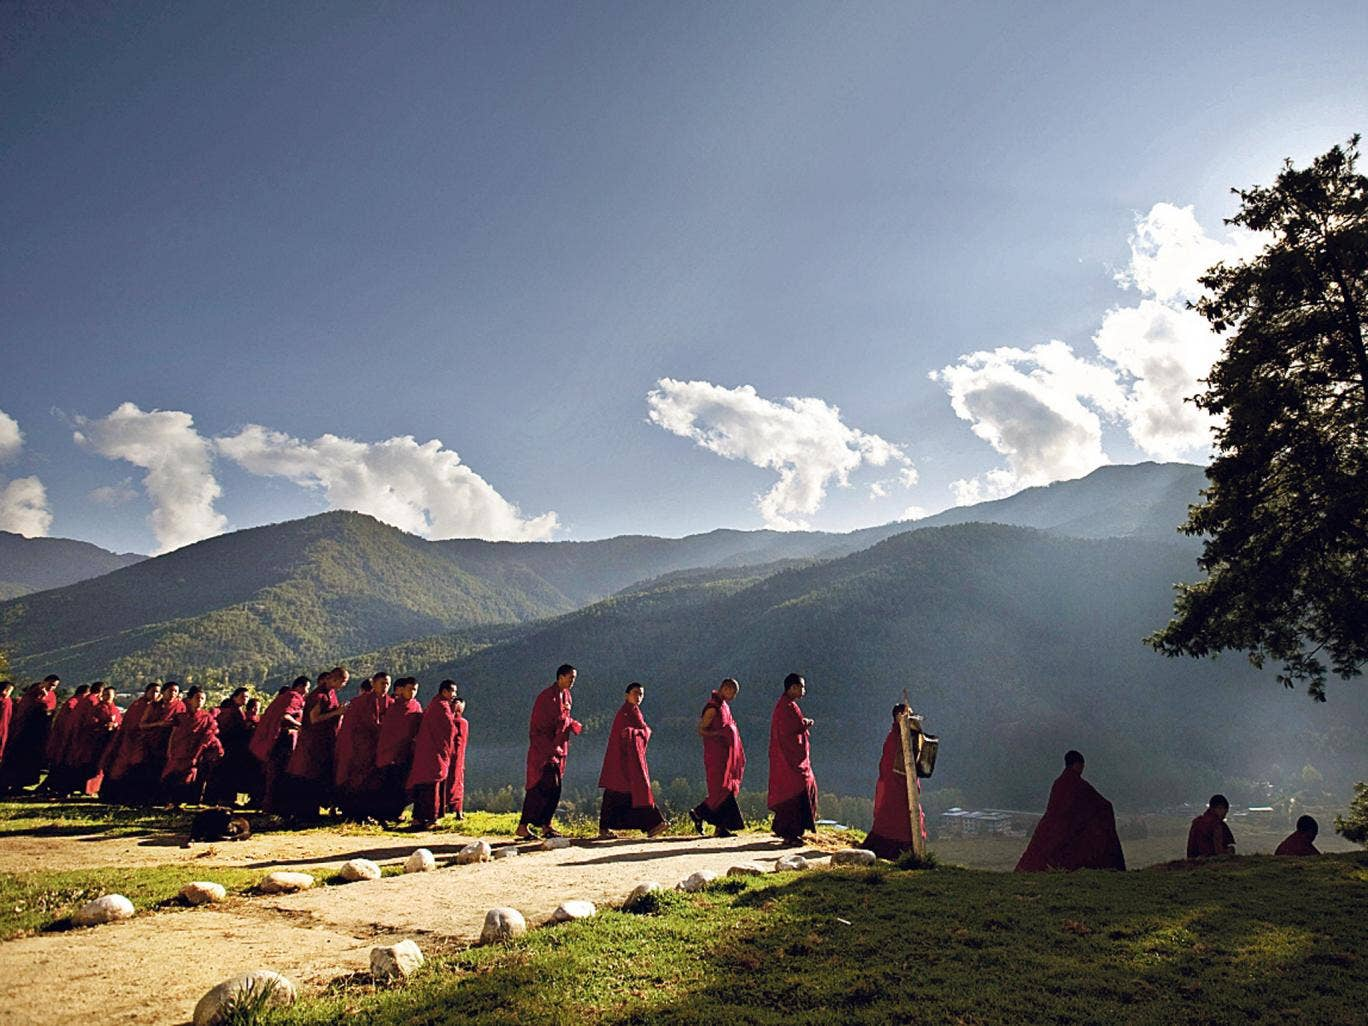 Walk on by: Buddhist monks on their way to a monastery in Bhutan